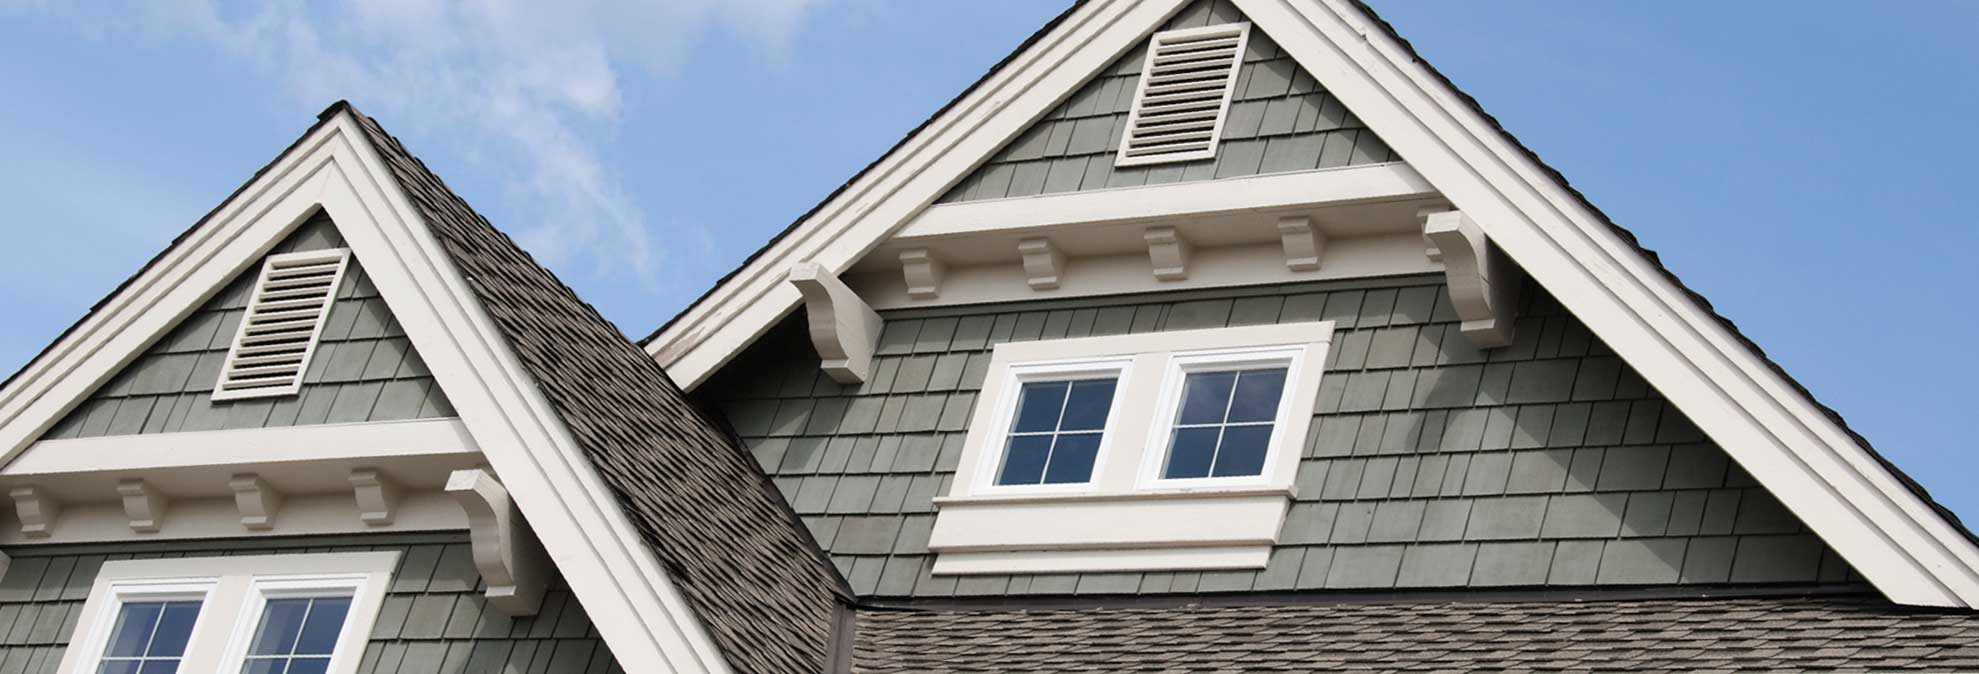 Different Roof Designs Houses House Design Ideas